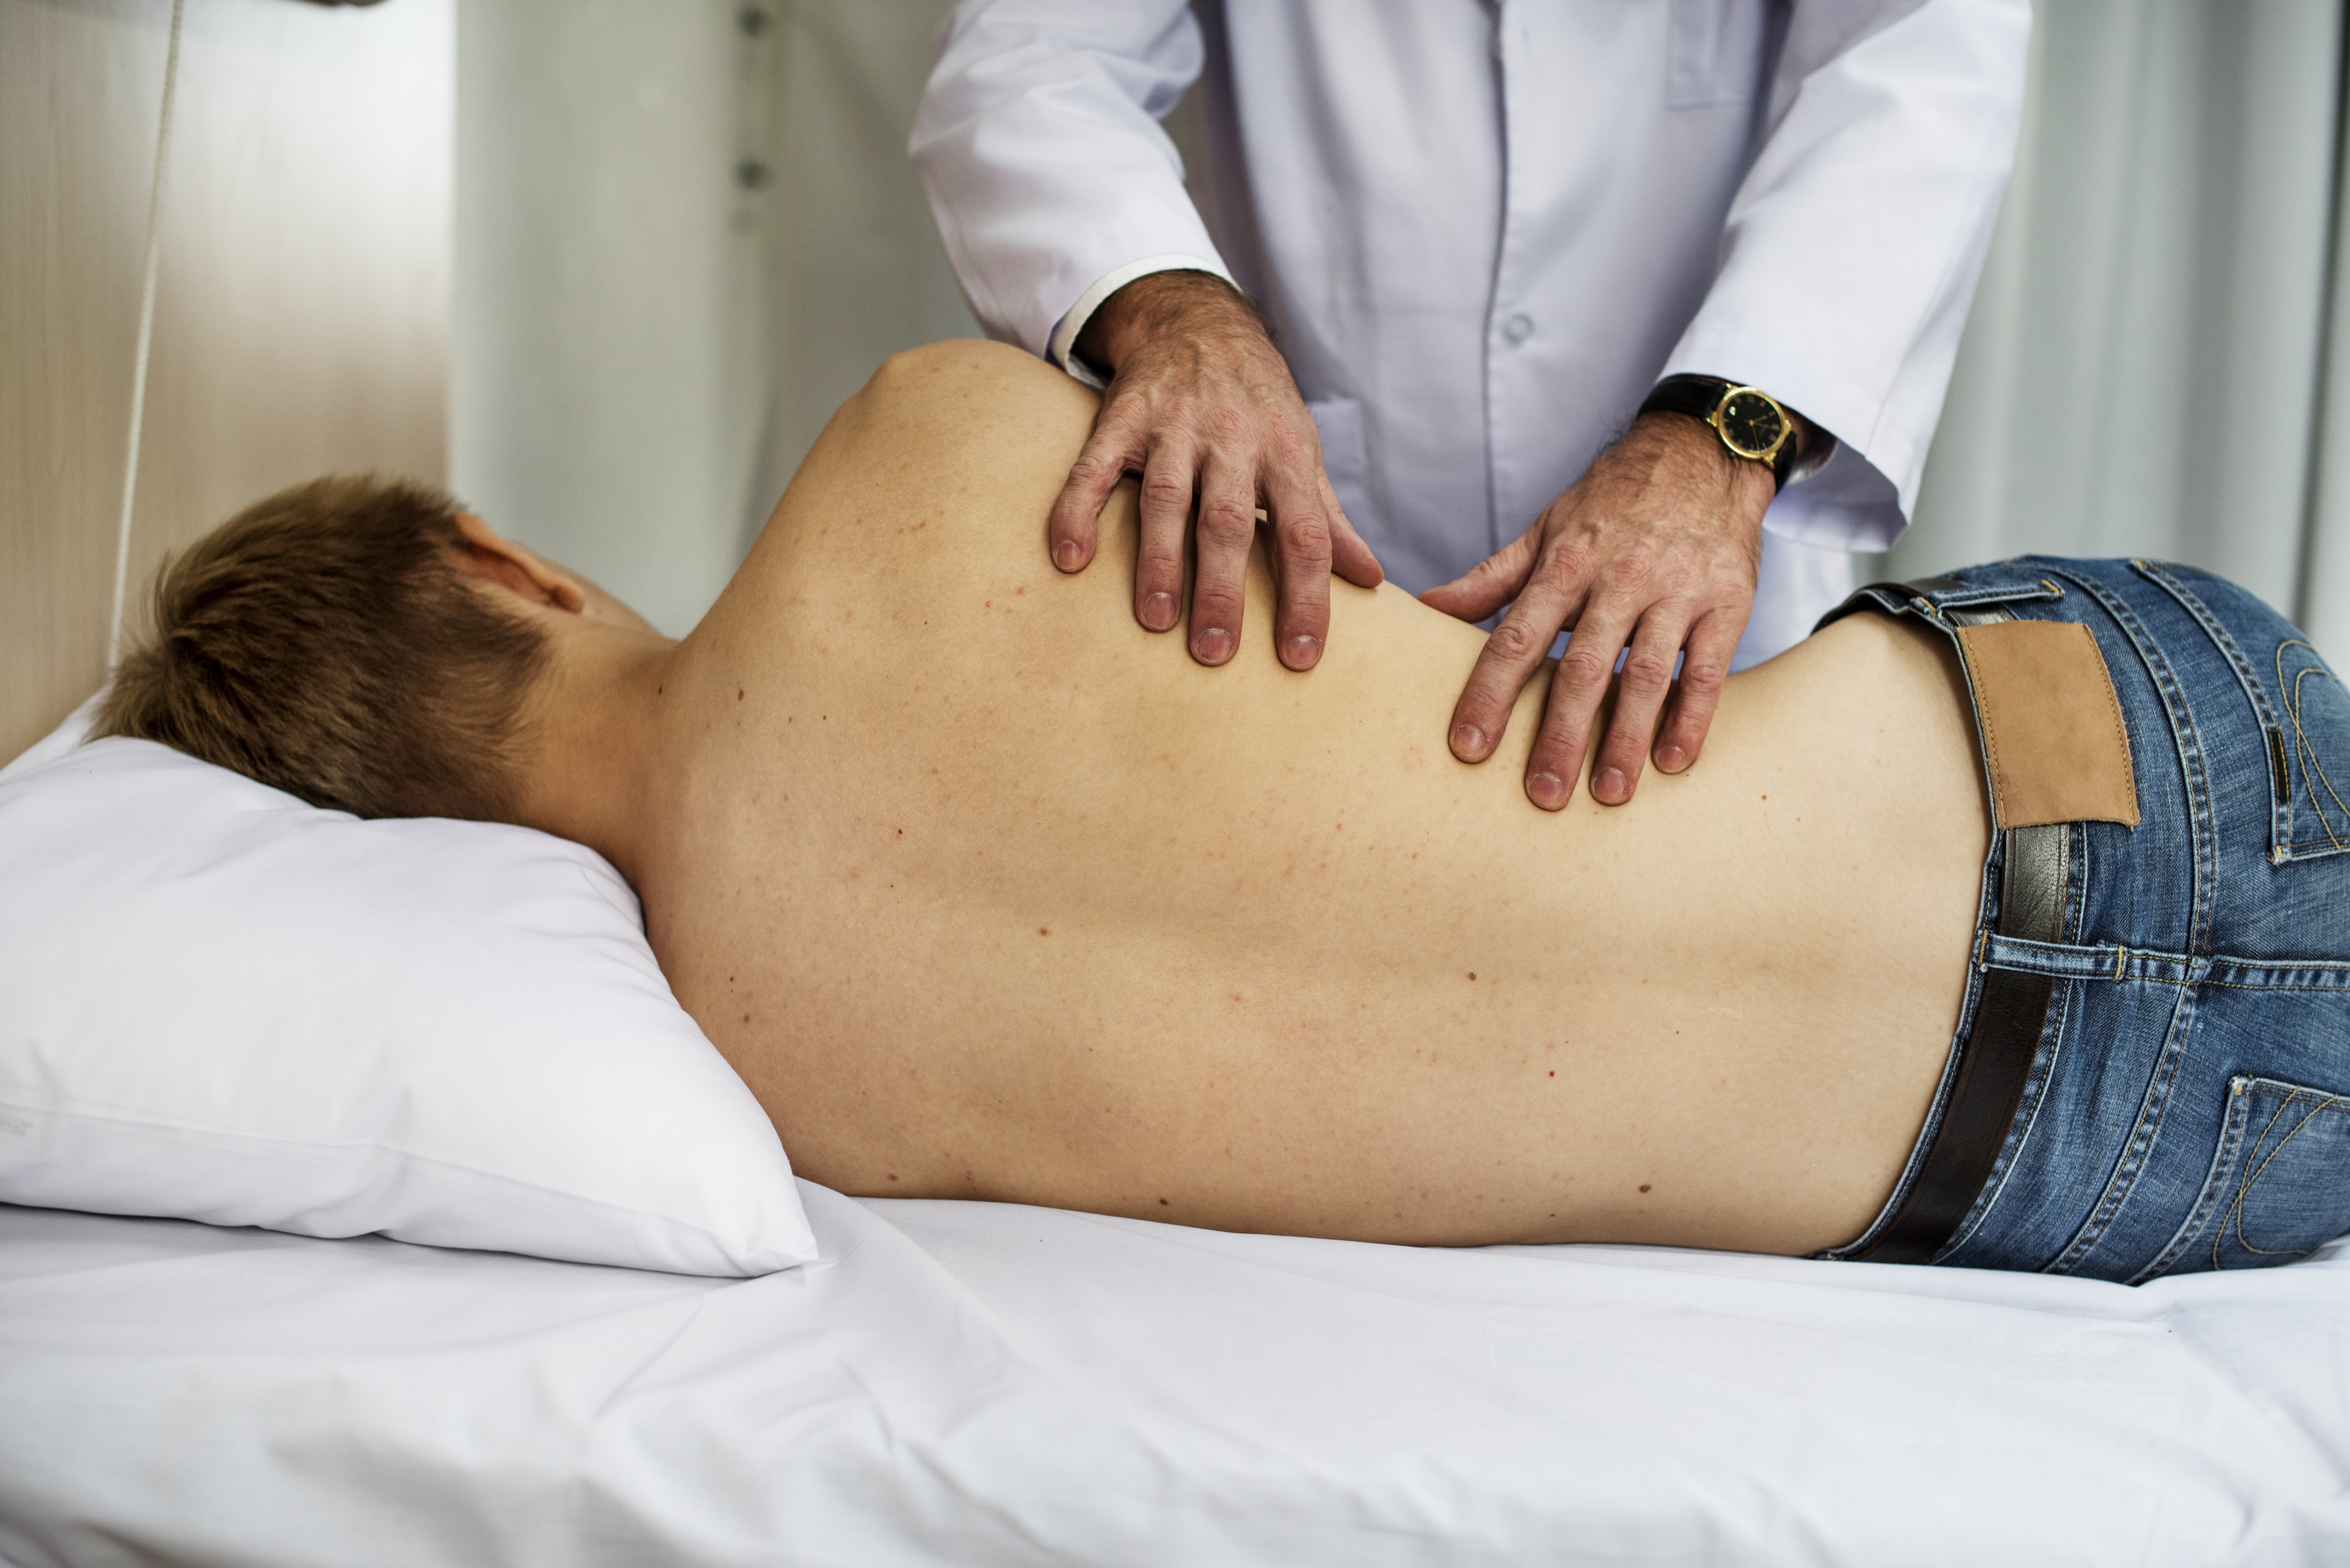 person in white long-sleeved top massaging man lying on bed inside room